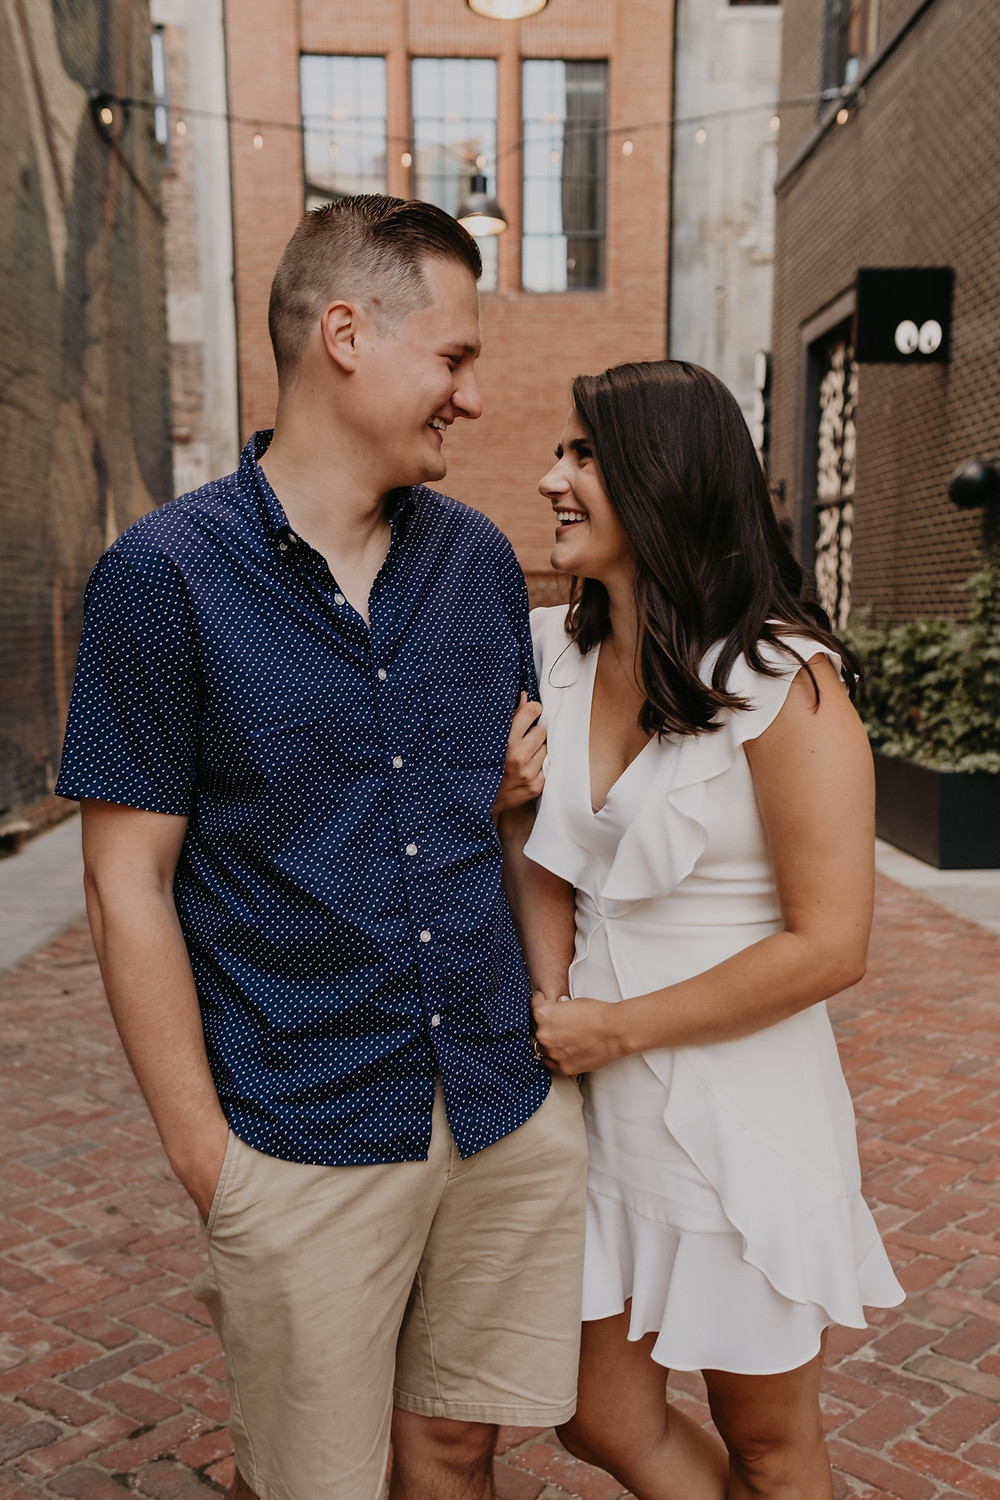 Engagement photo session in Shinola Alley in Detroit. Photographed by Nicole Leanne Photography.